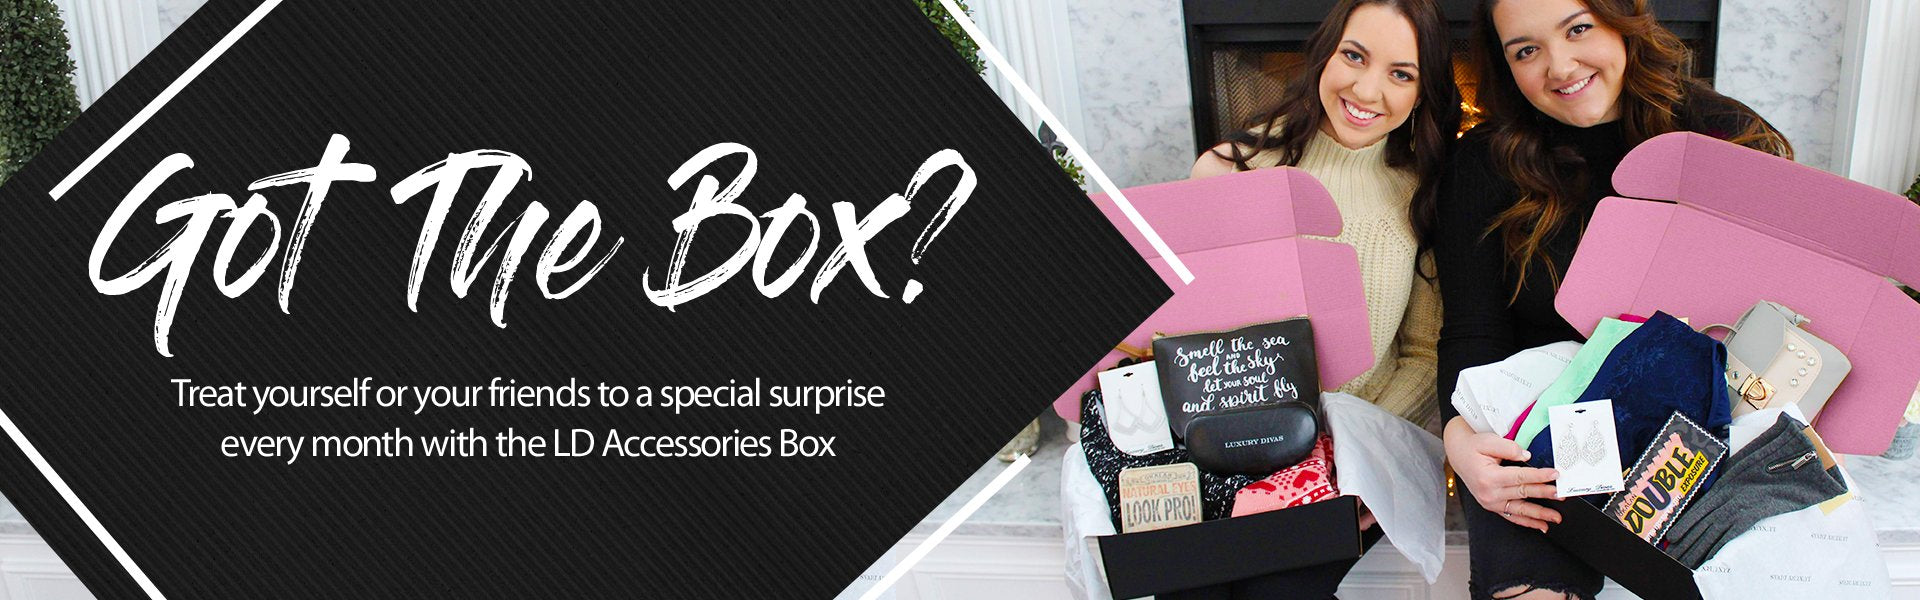 LD Accessories Box Monthly Subscription Box